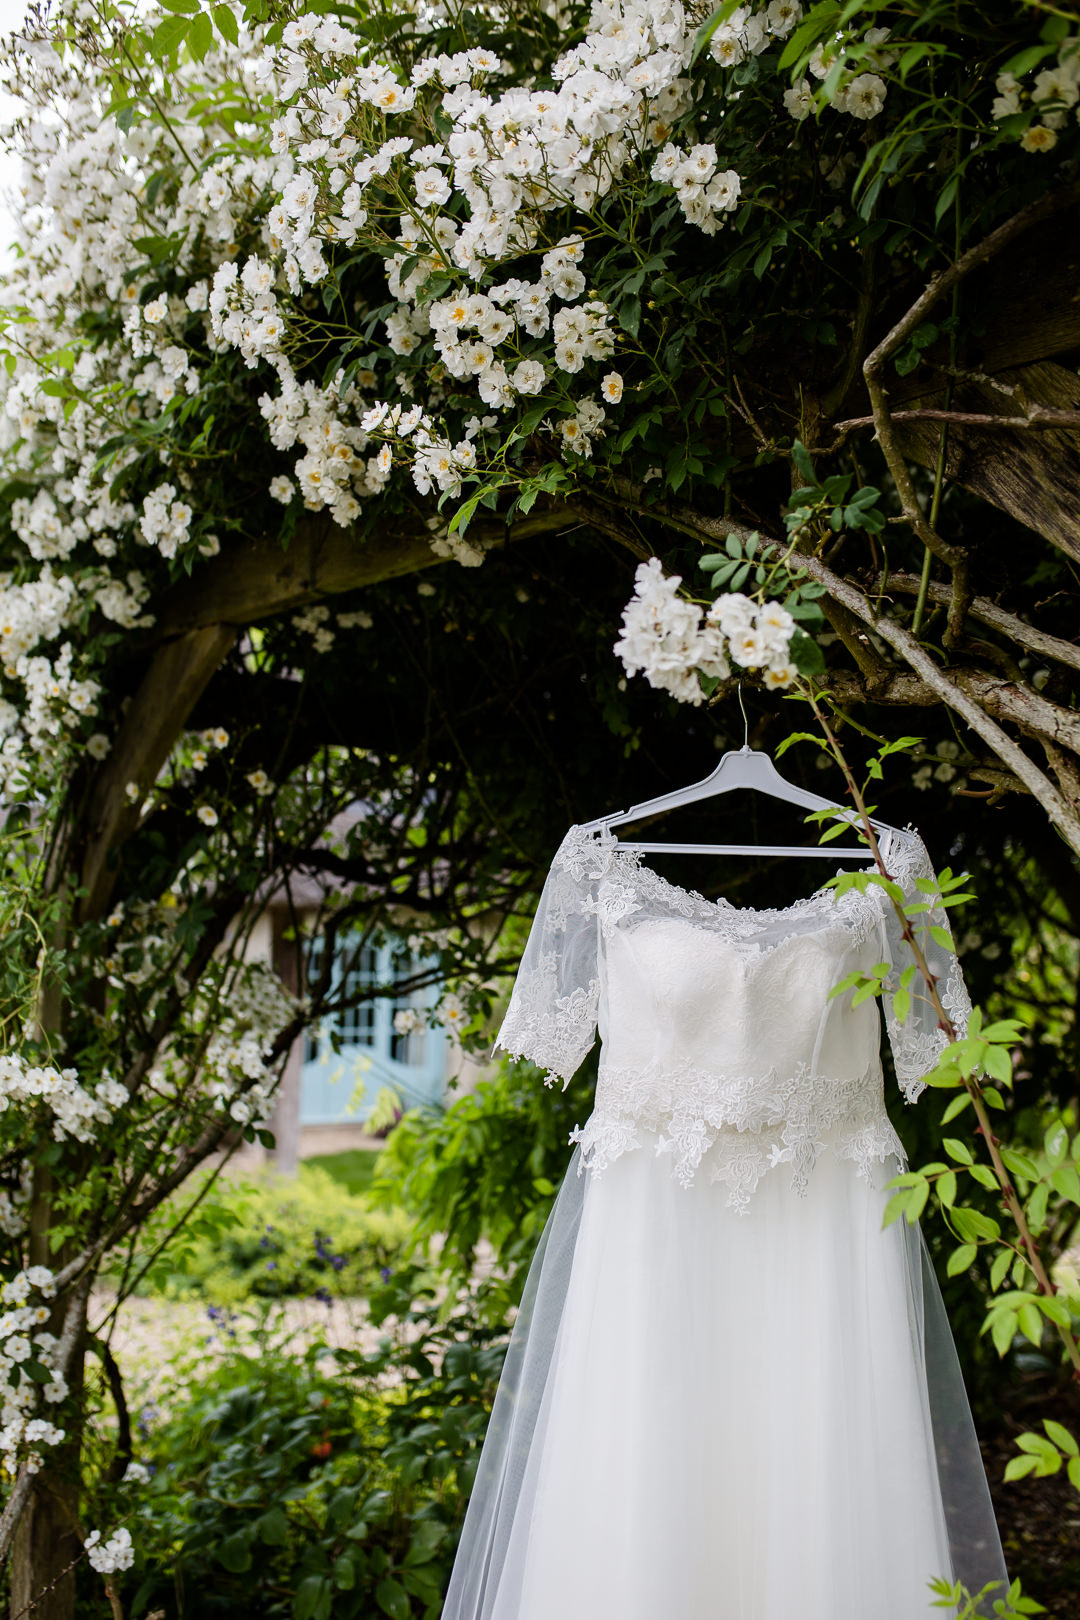 Lace wedding dress from The Organza Room Amesbury Wiltshire, hanging in a rose bush